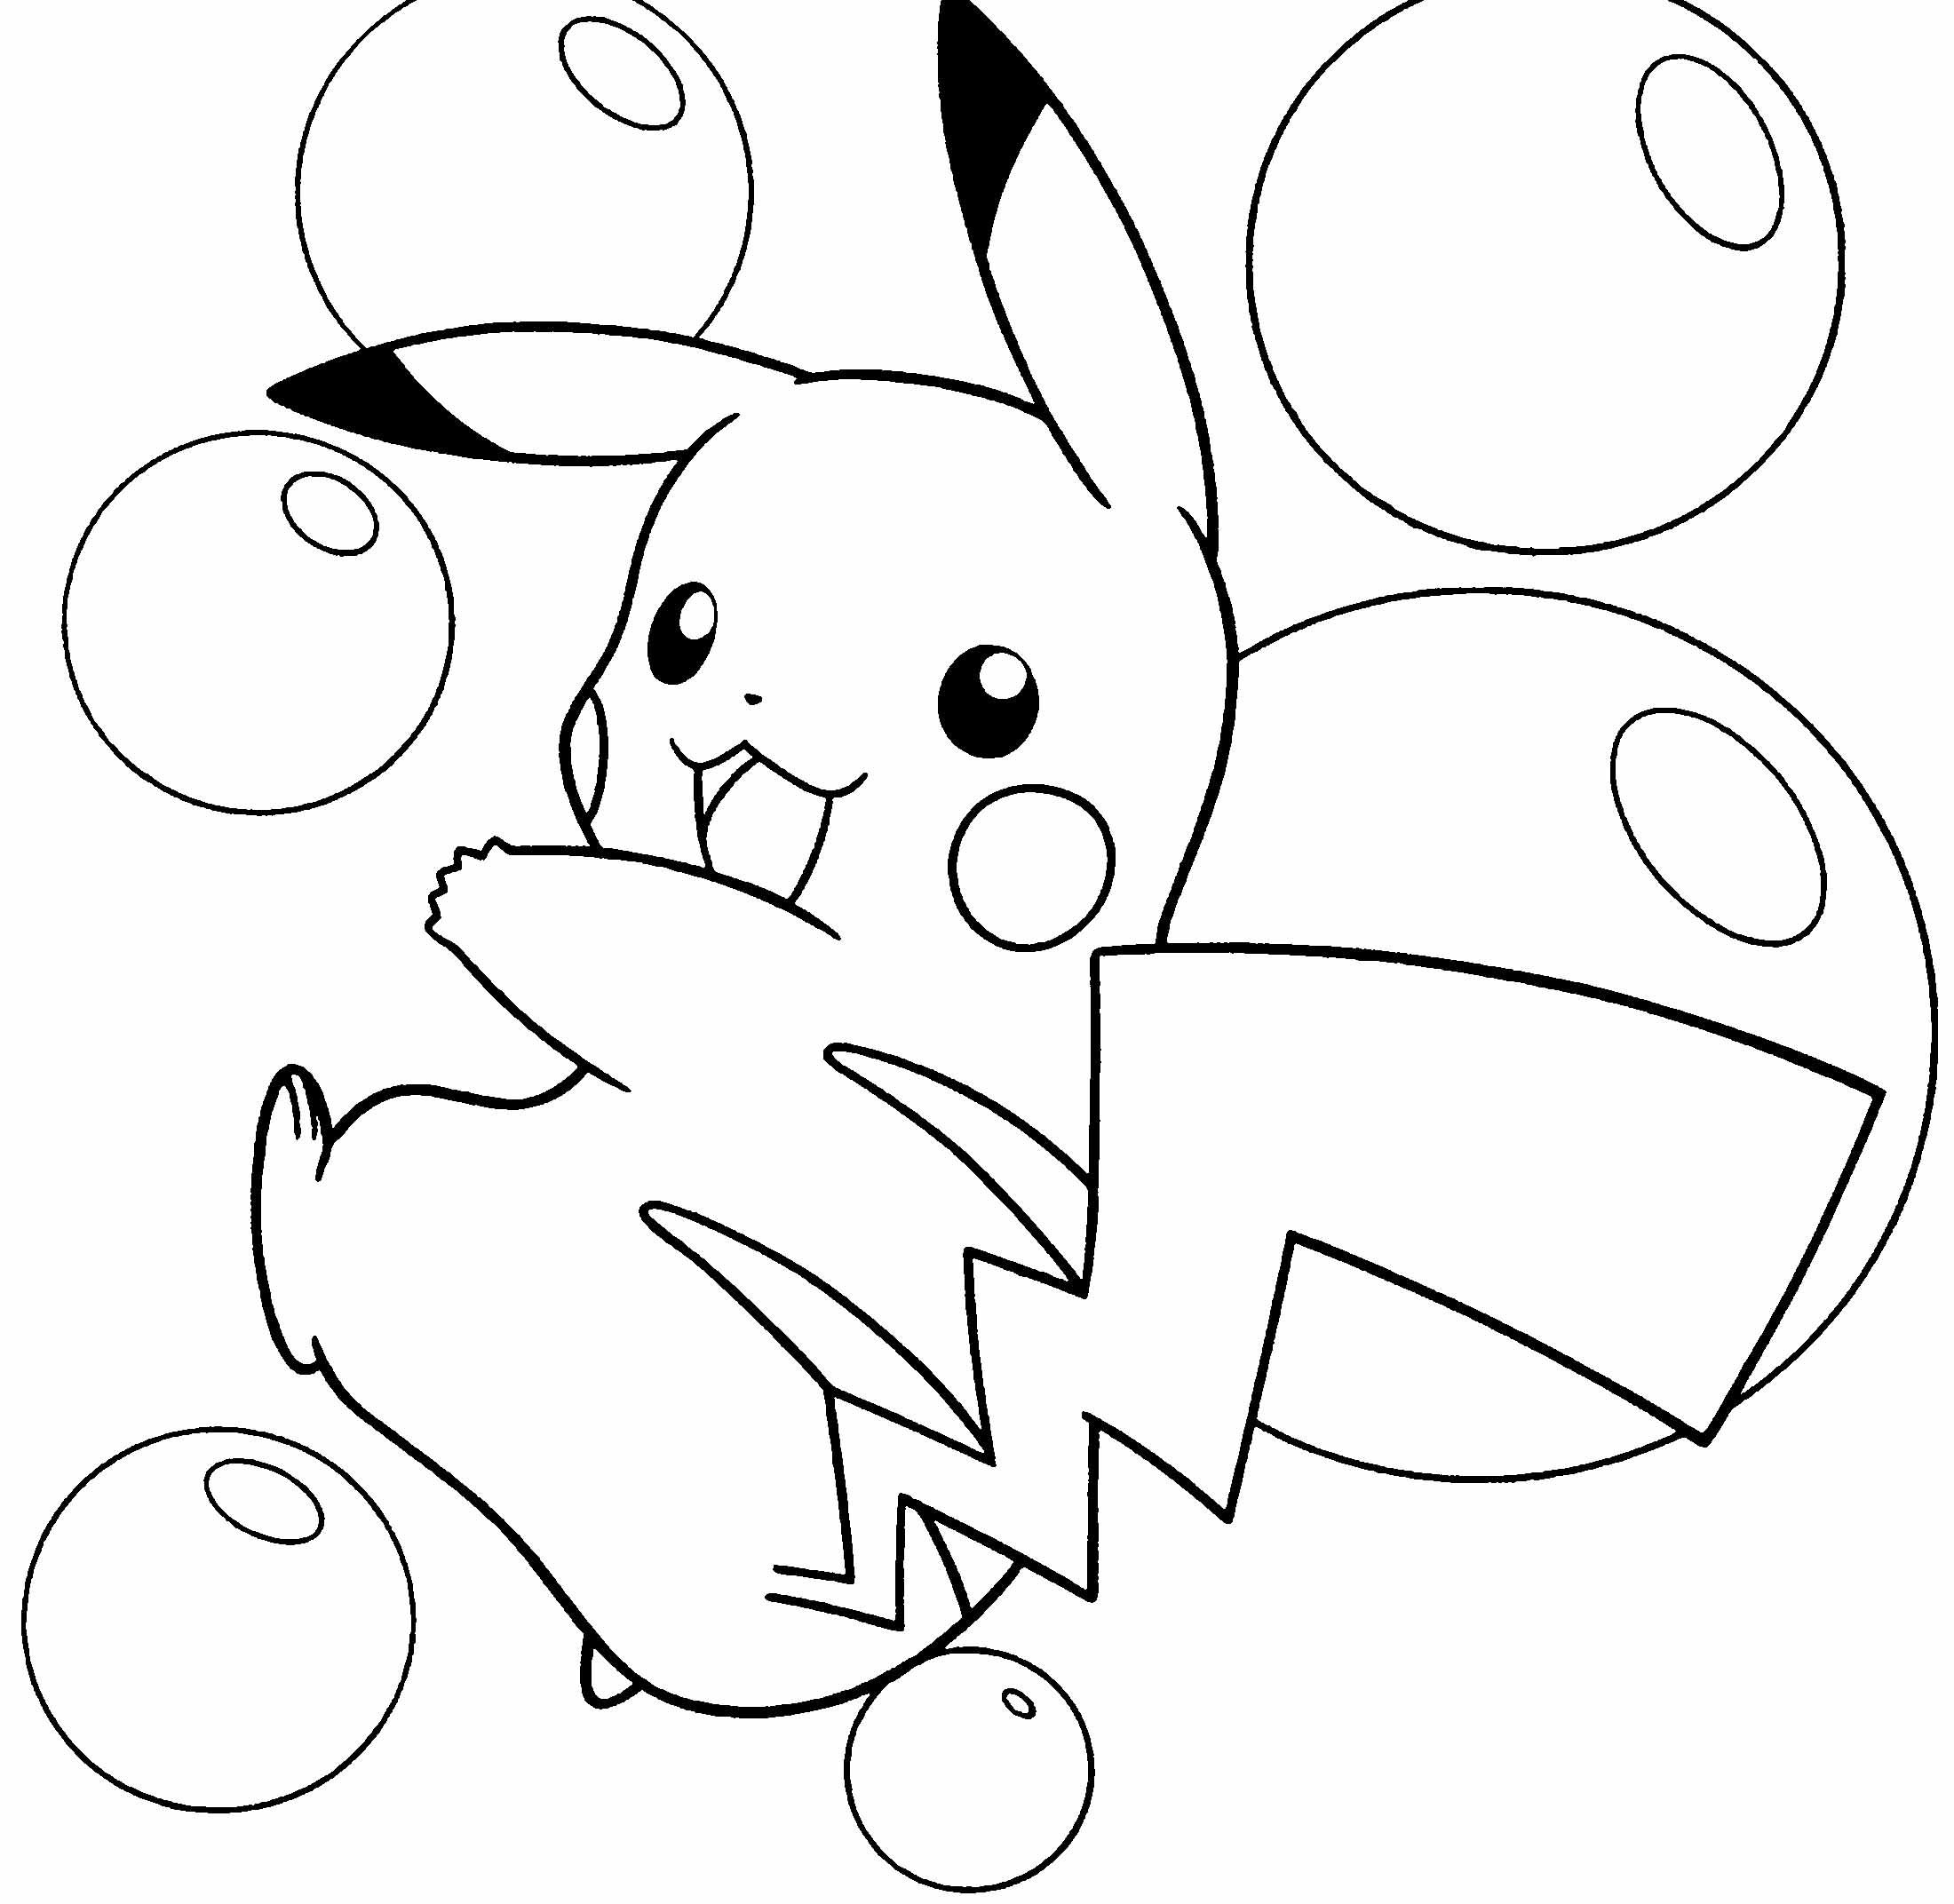 Pikachu Coloring Pages Free Large Images Pikachu Coloring Page Pokemon Coloring Pokemon Coloring Pages